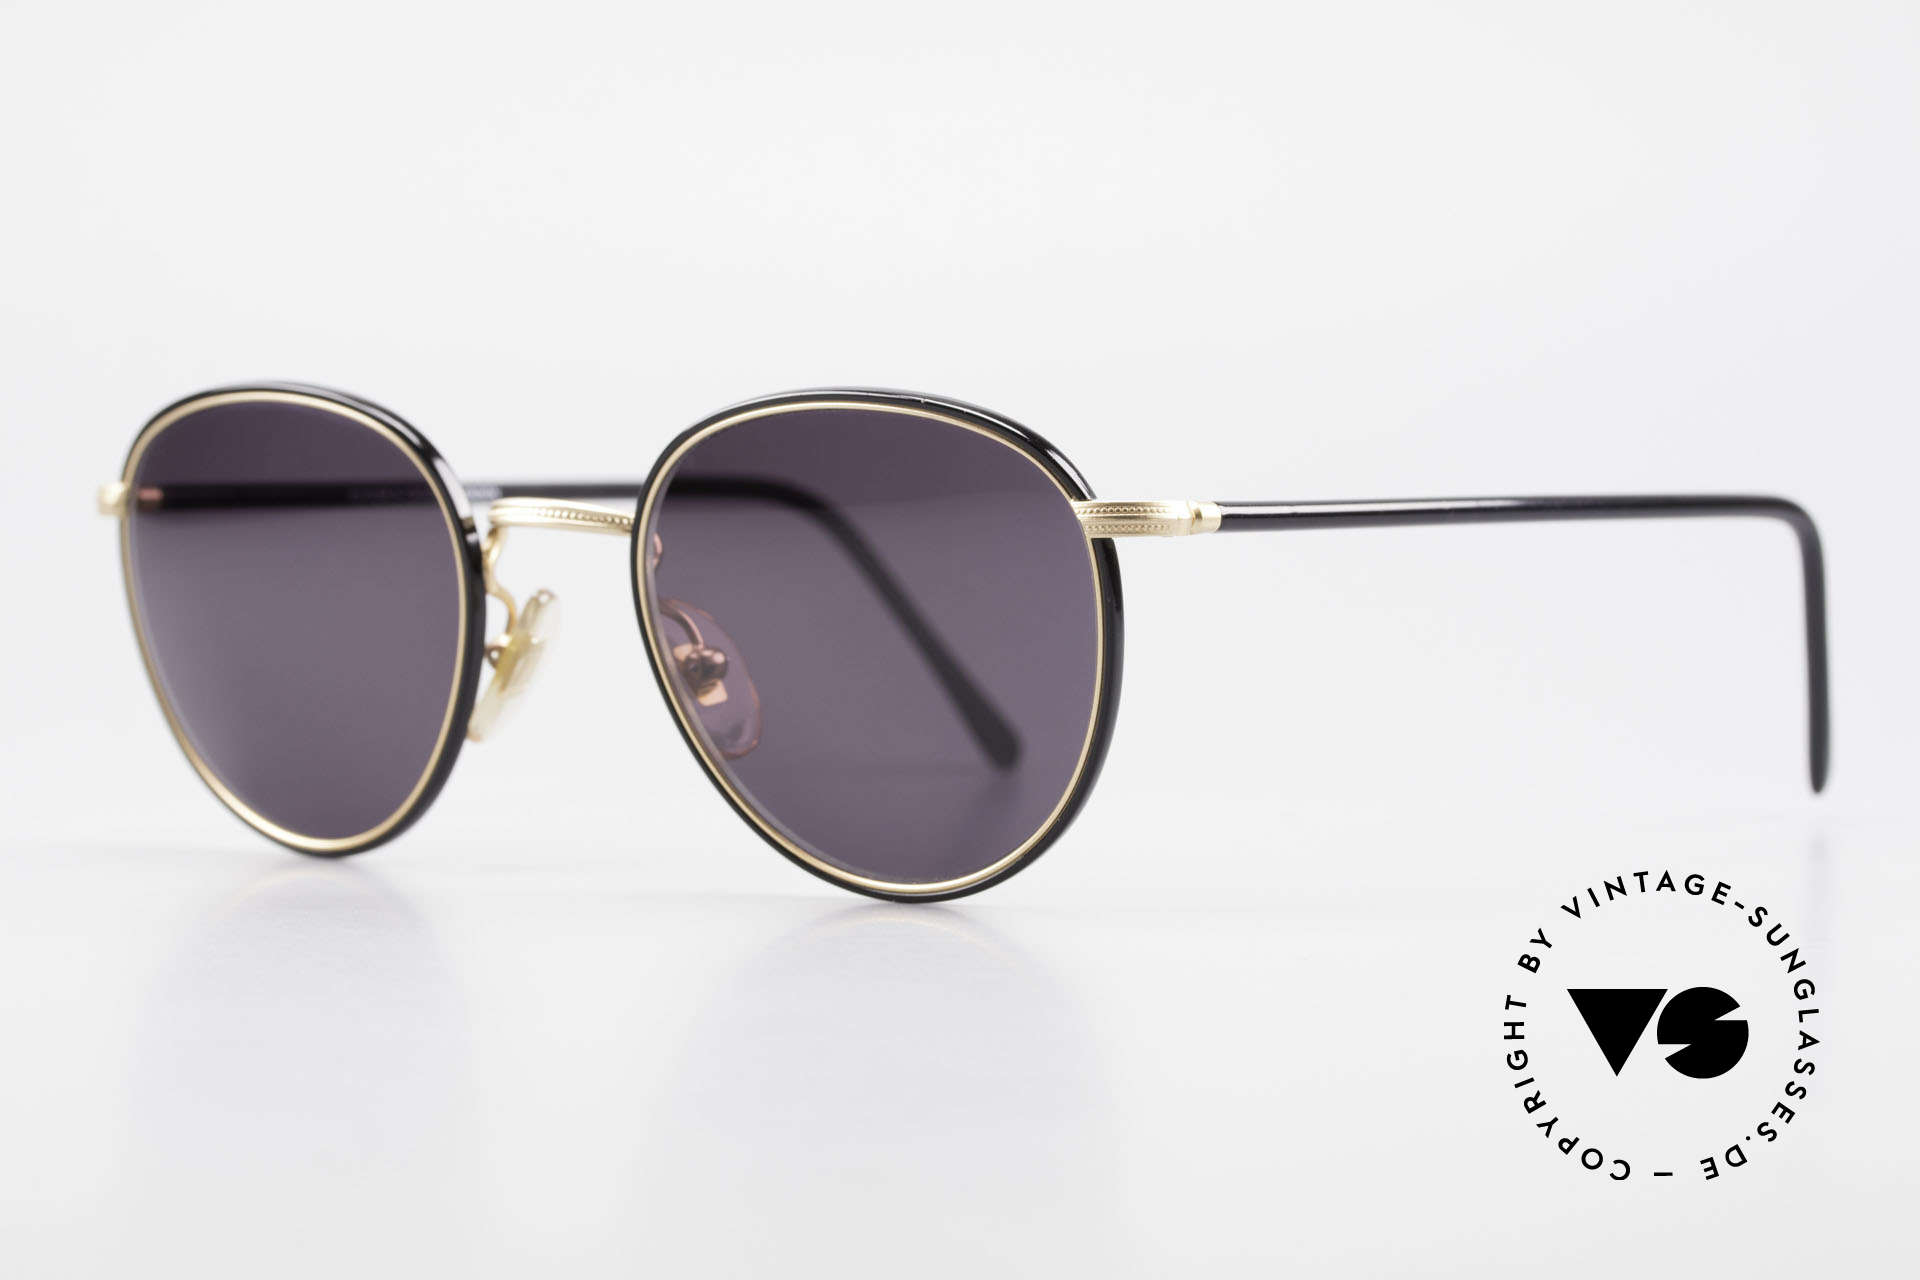 Cutler And Gross 0352 Vintage Panto Sunglasses 90s, stylish & distinctive in absence of an ostentatious logo, Made for Men and Women